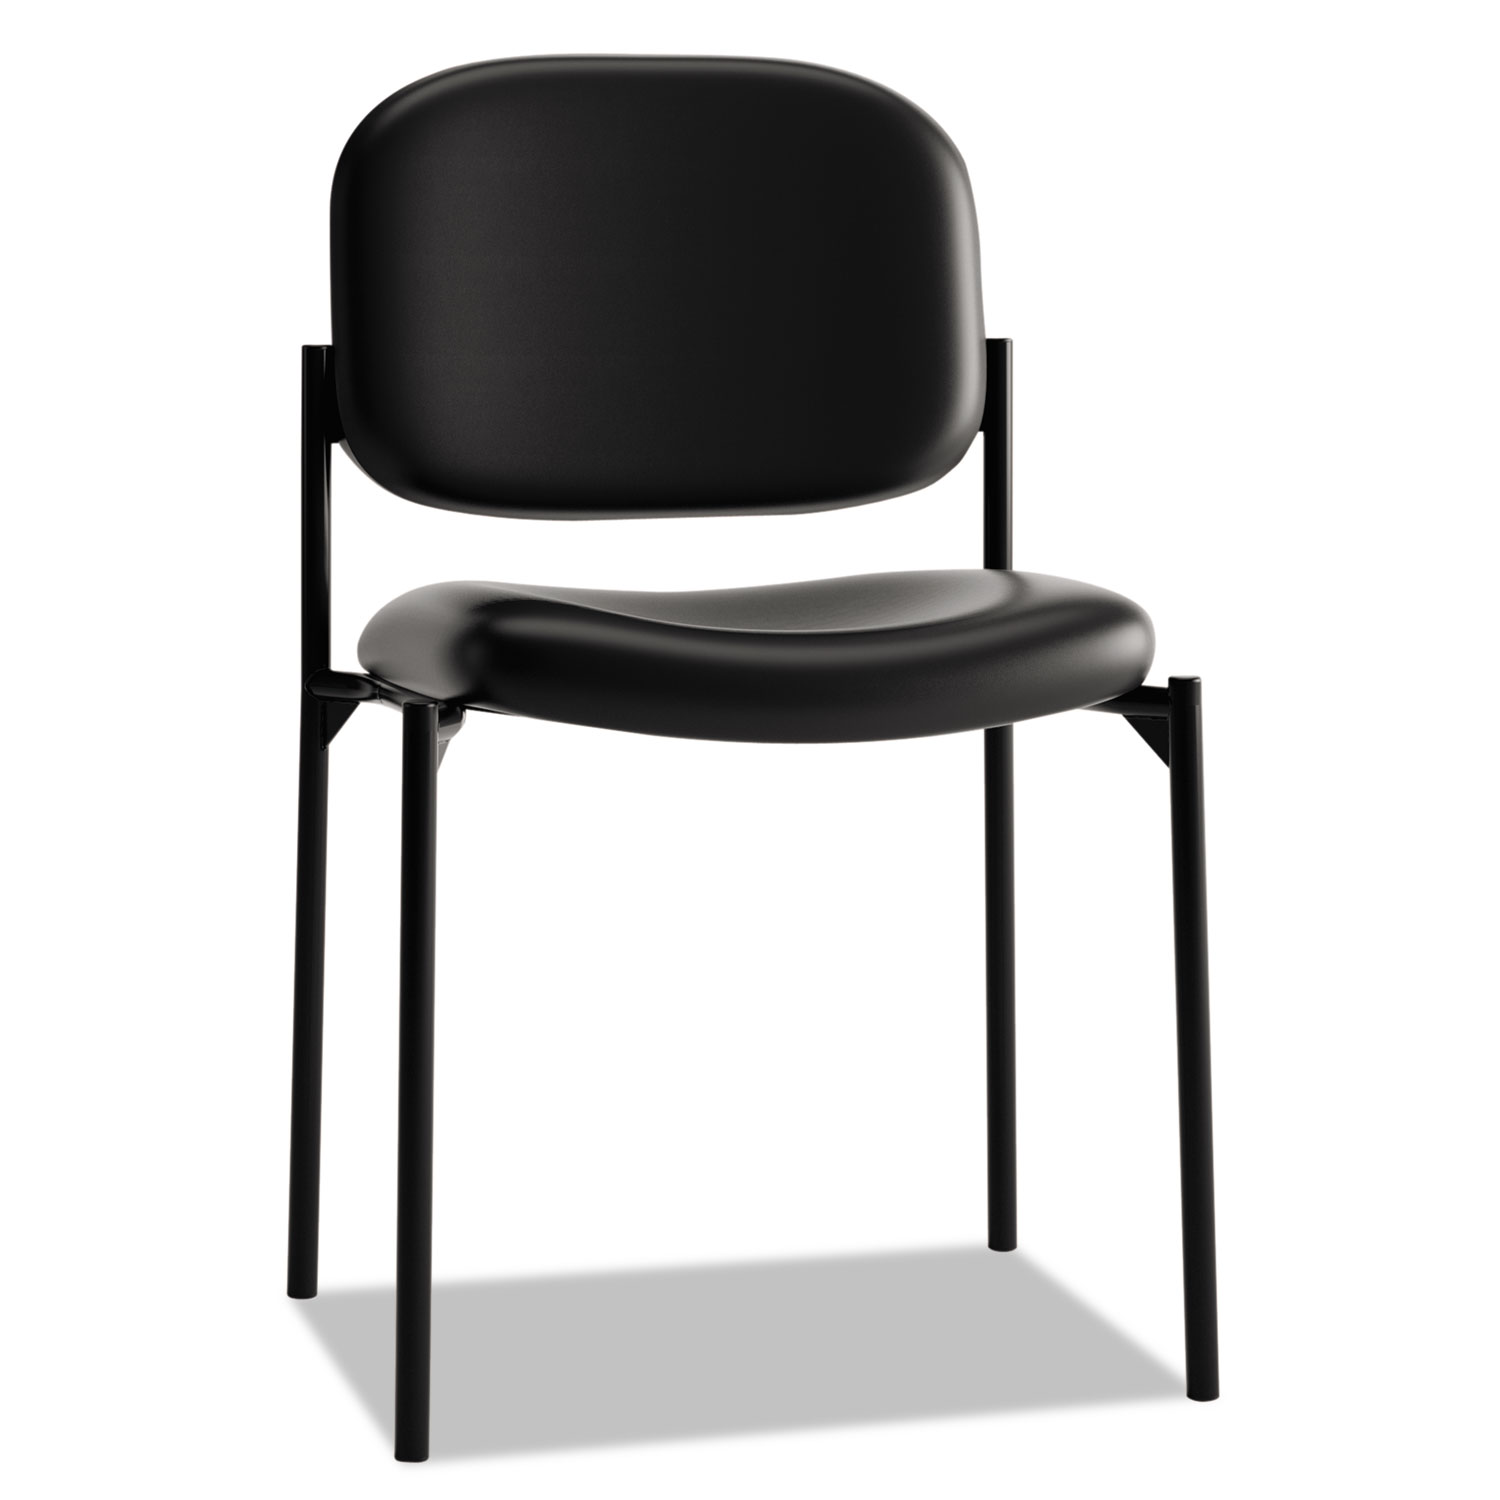 Vl606 Stacking Guest Chair Without Arms Black Seat Black